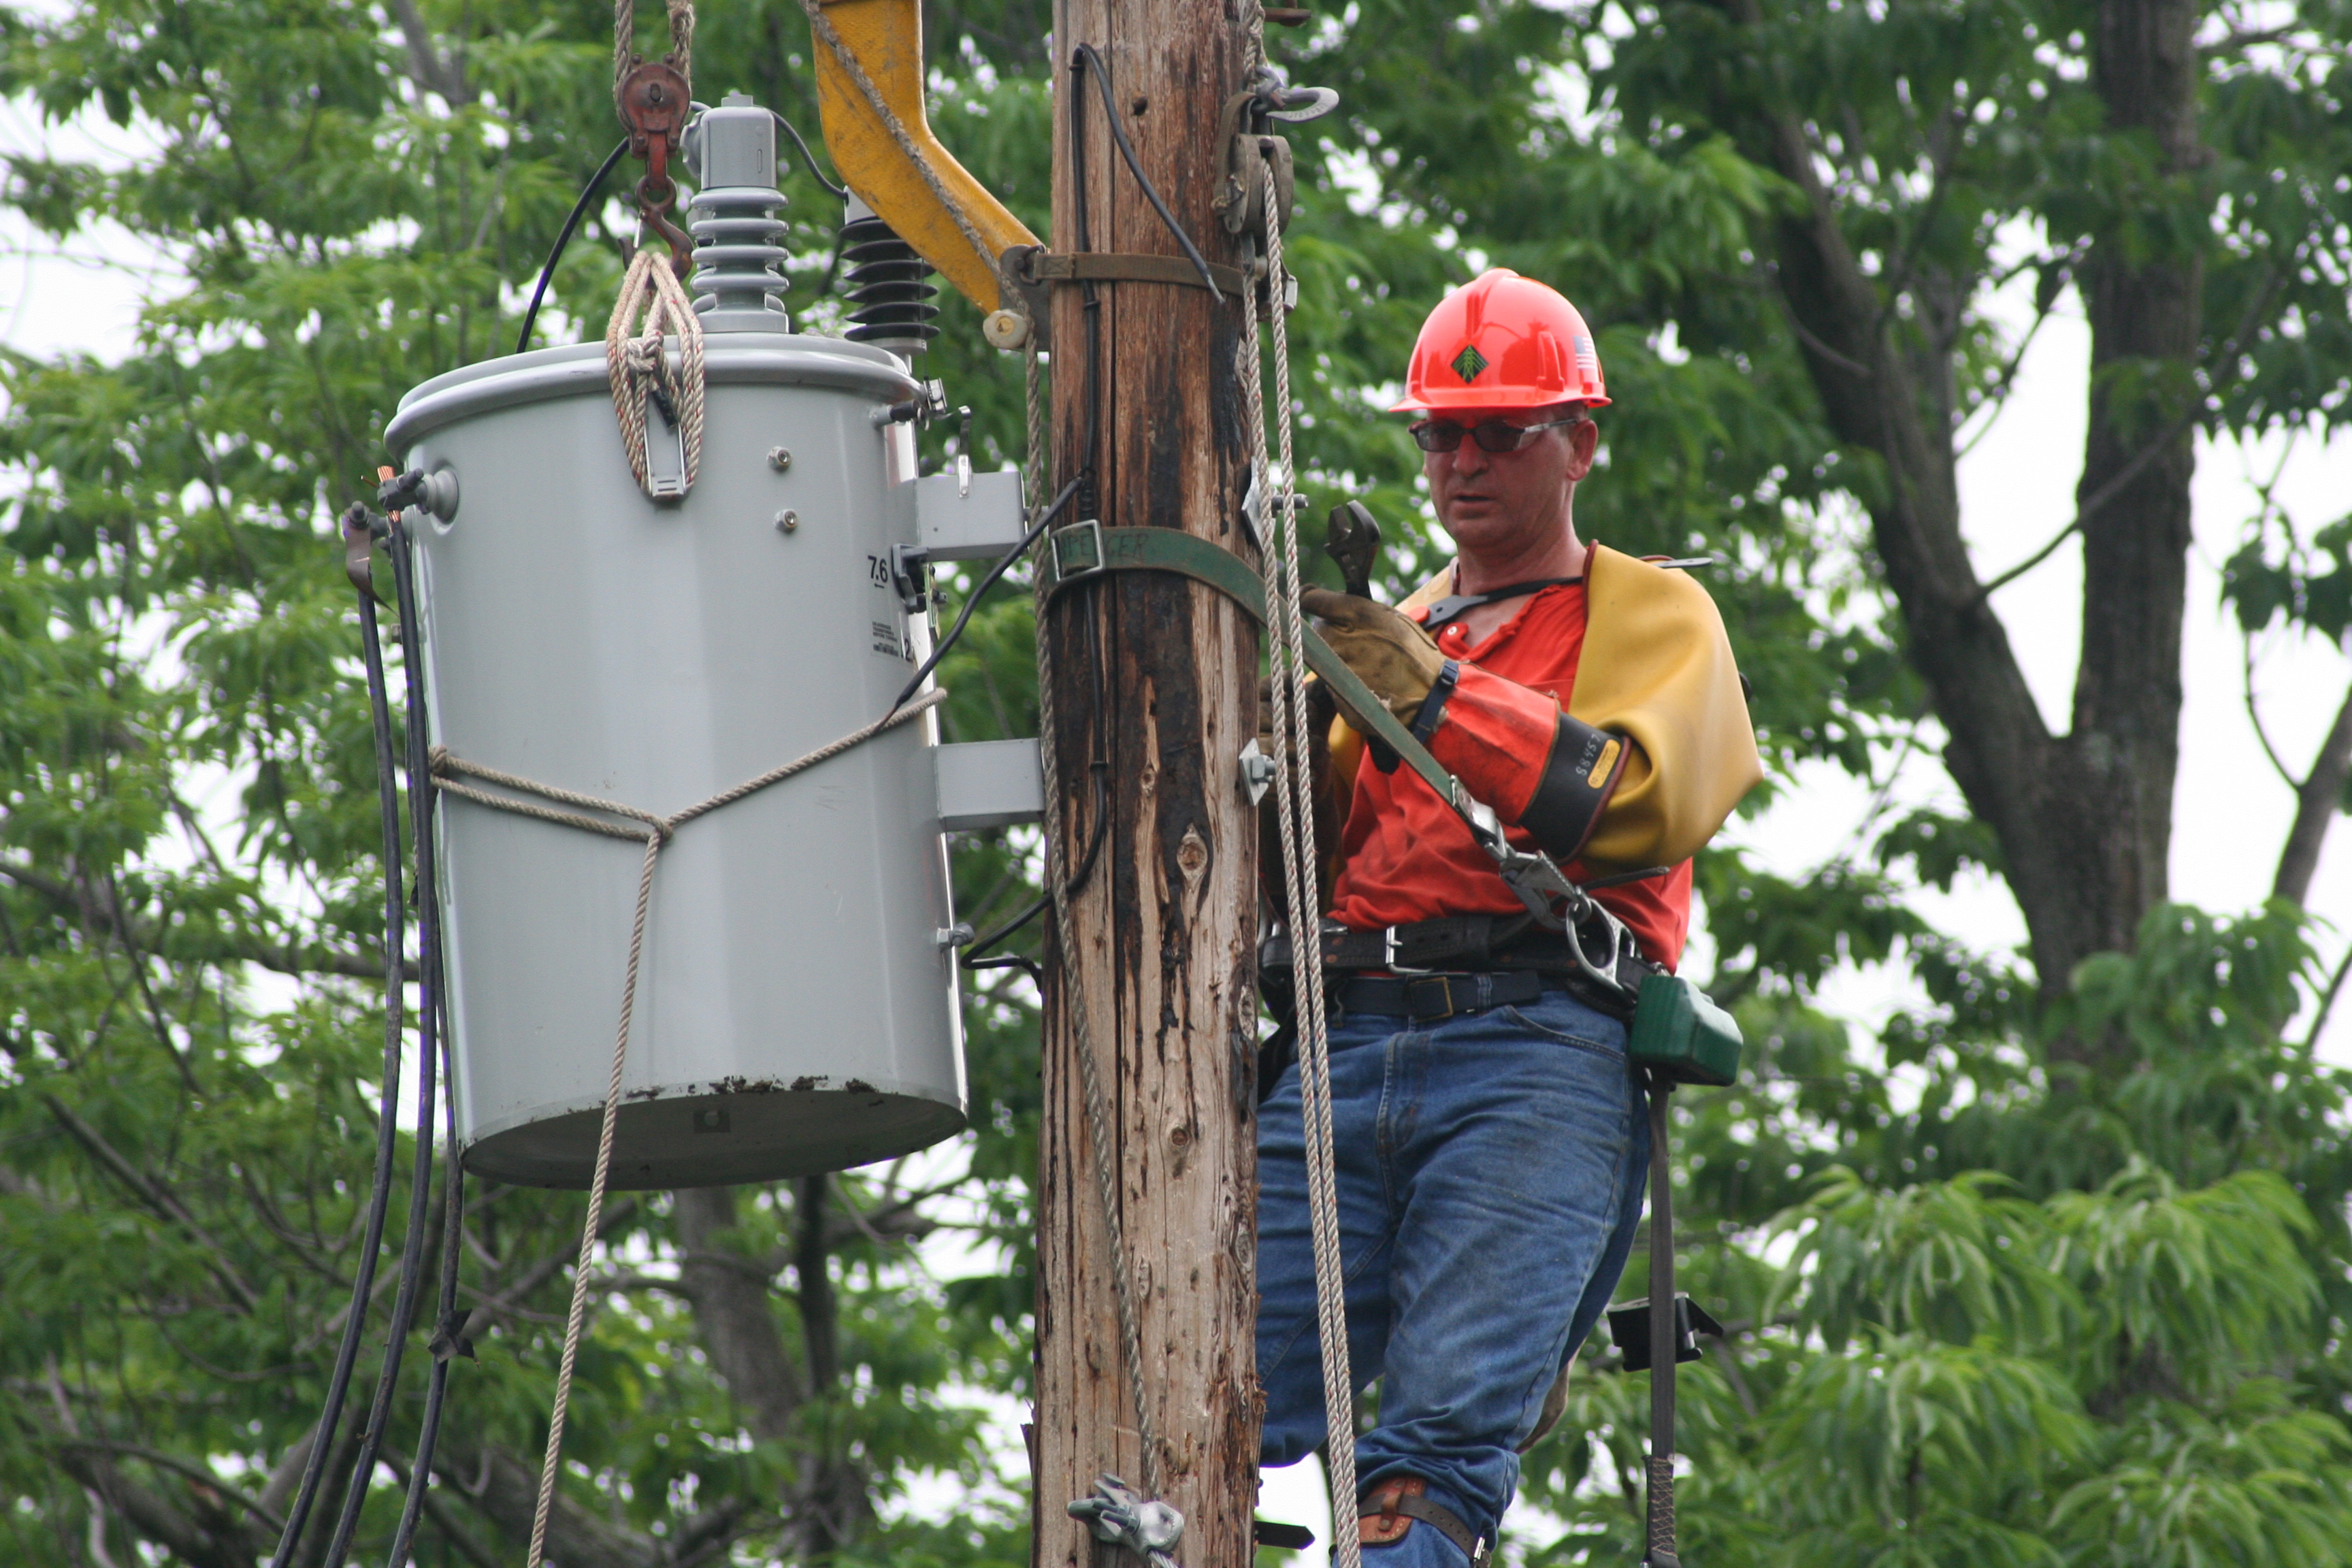 File:Lineman changing transformer.jpg - Wikipedia